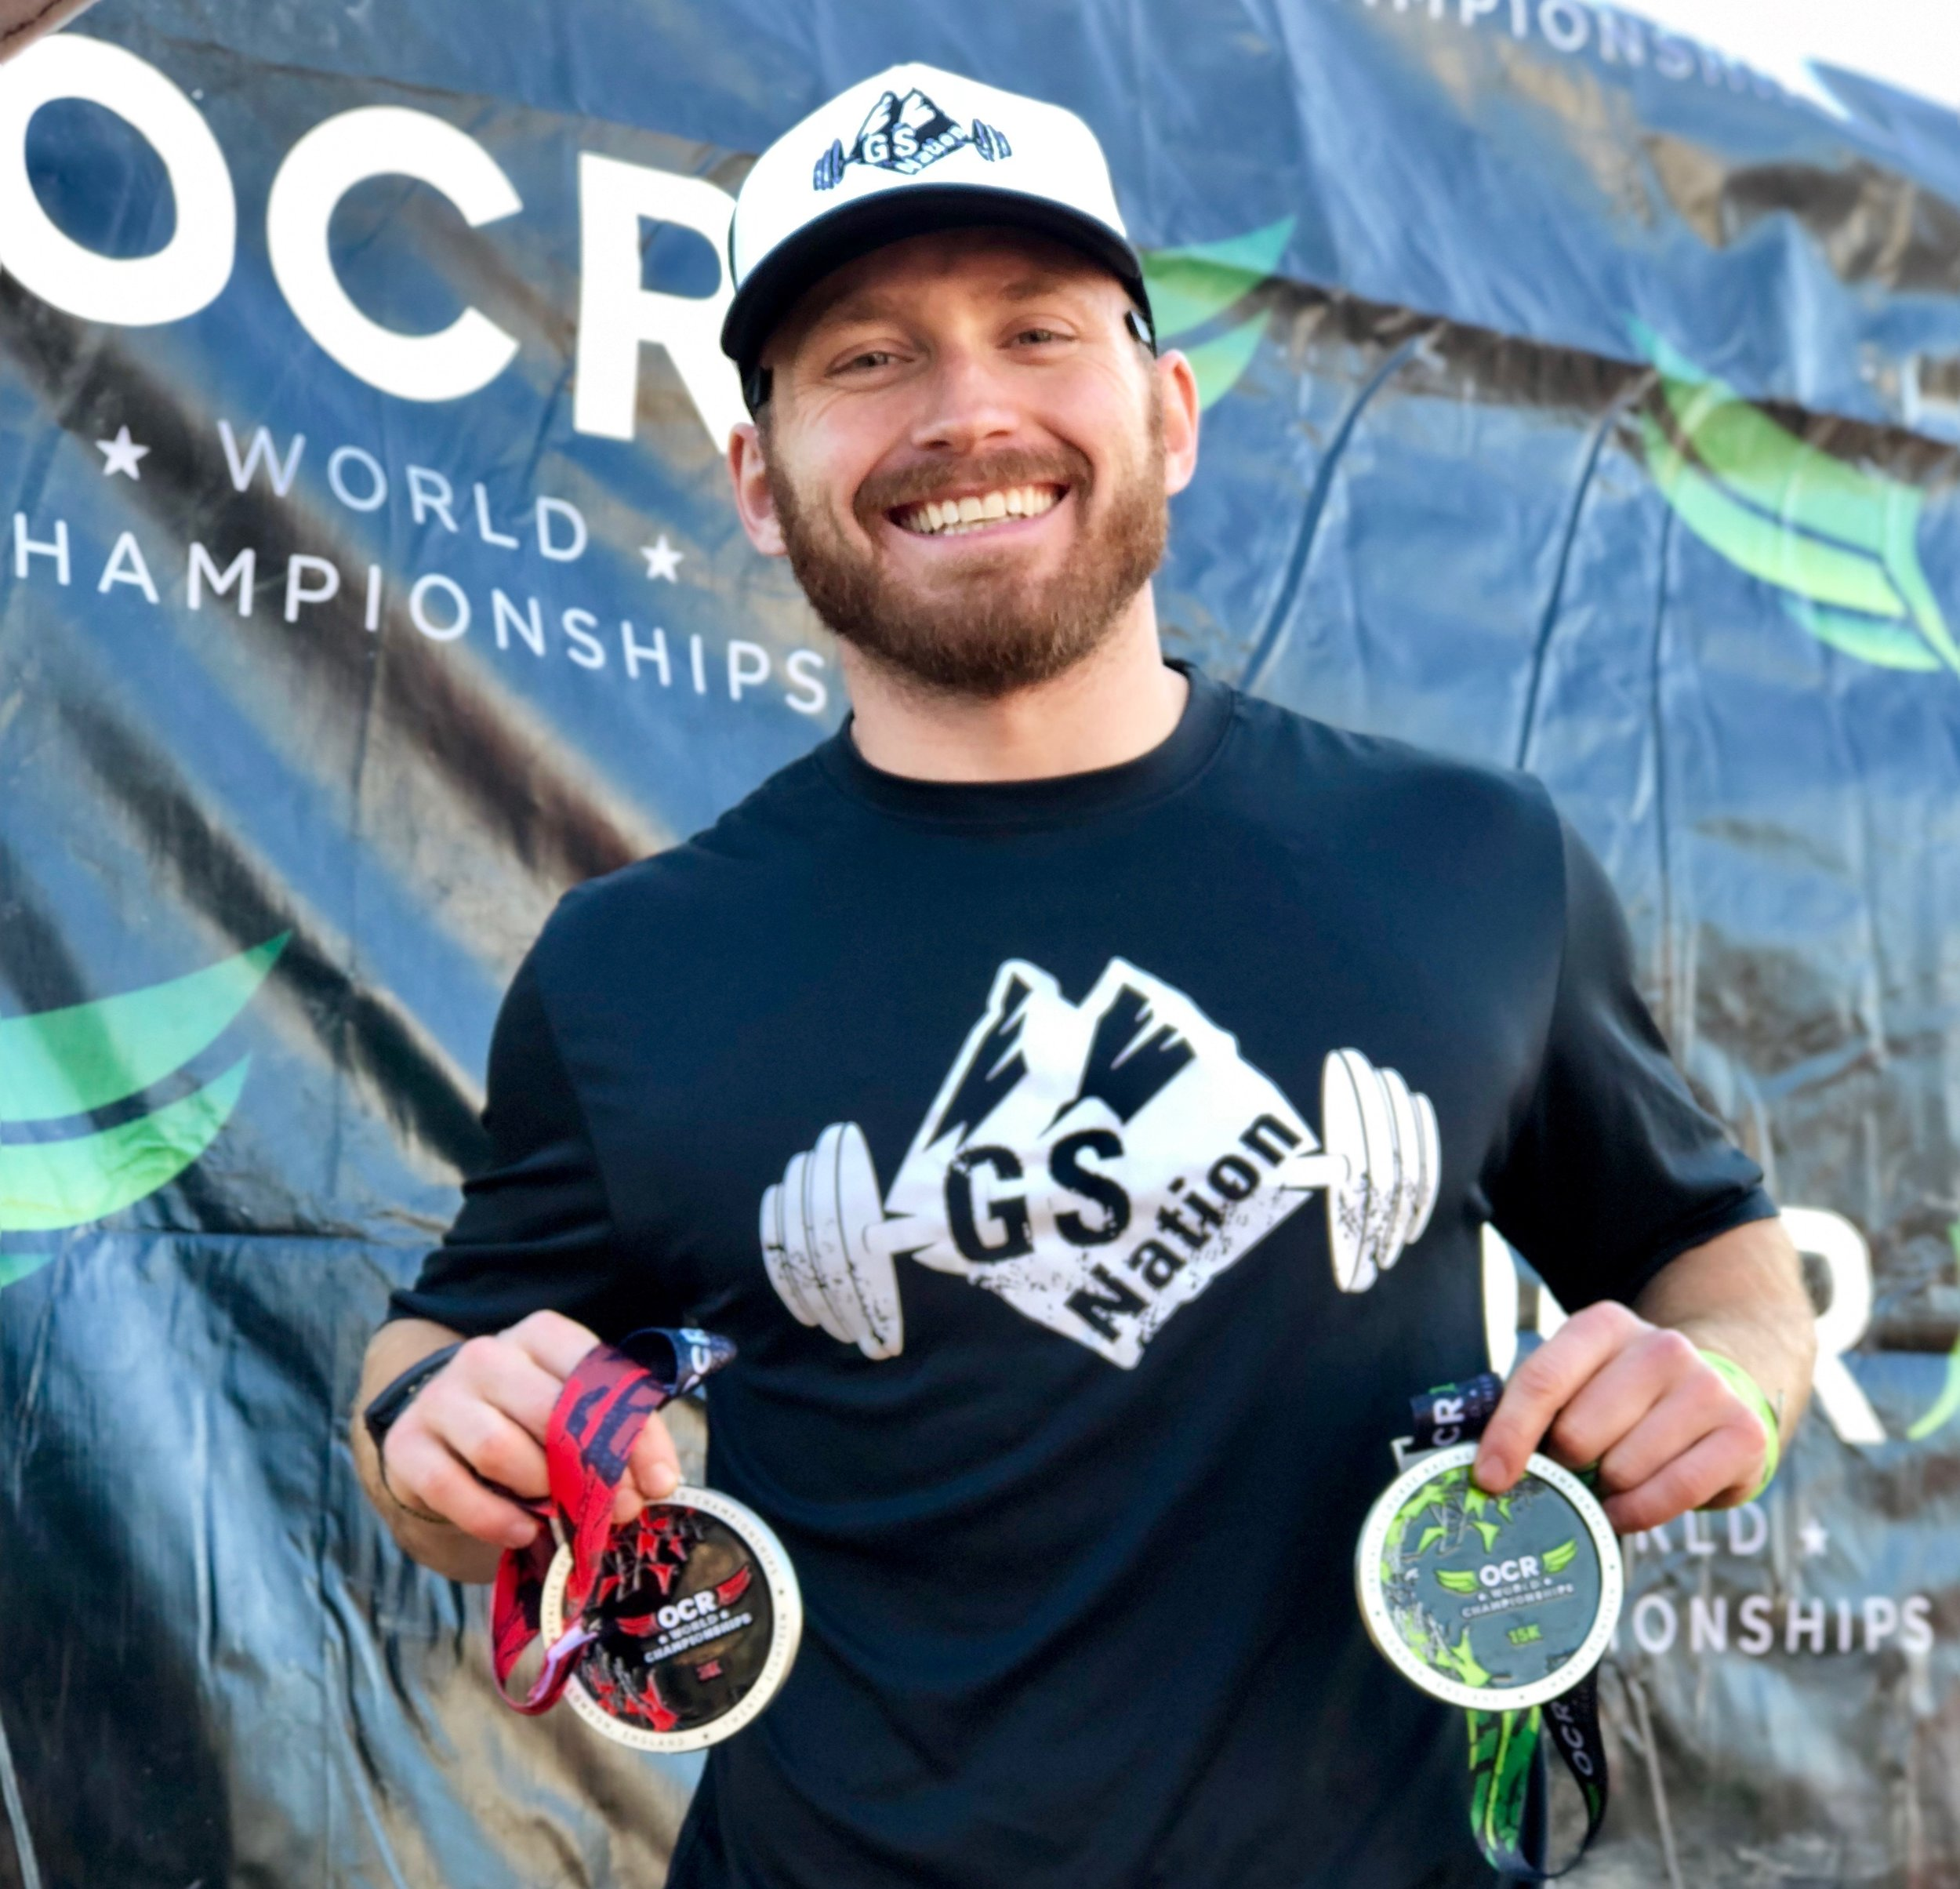 OCR Training - Learn from THE best Obstacle Course Racing athlete in Richmond, Coach Dave Robinson, as we put on clinics and provide programming based on what YOU want to accomplish in this incredible sport!You've seen pics on FB of your